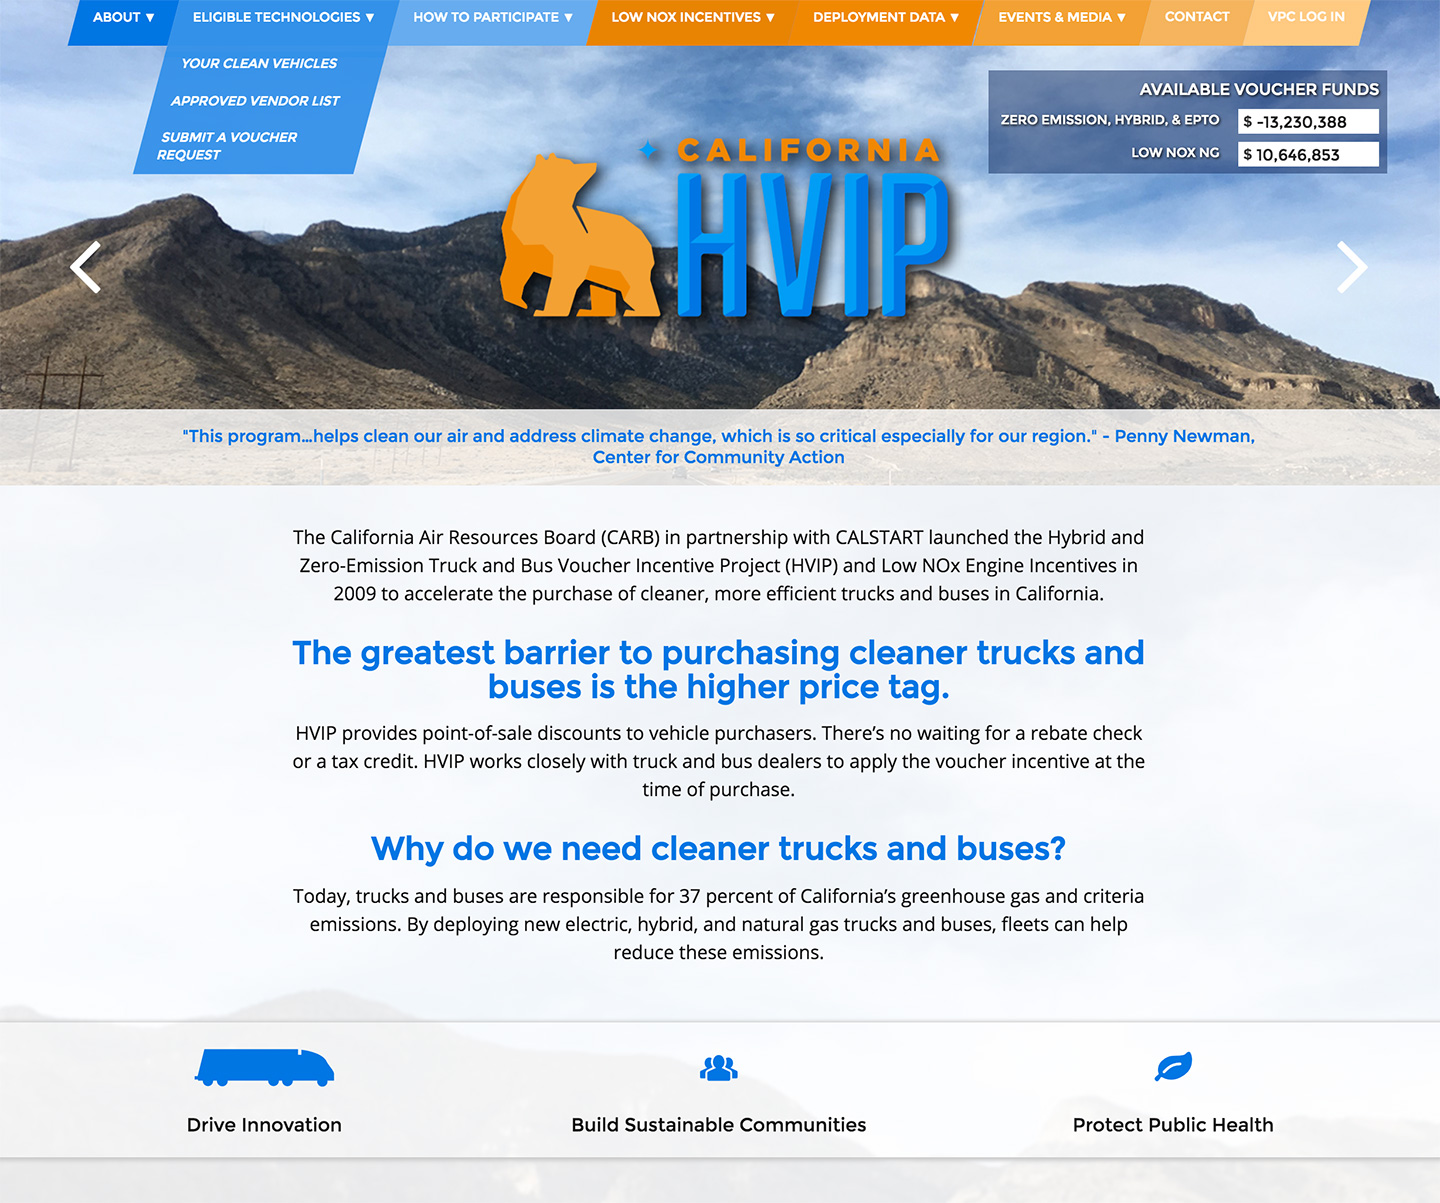 California Hybrid and Zero-Emission Truck and Bus Voucher Incentive Project: CalHVIP Homepage